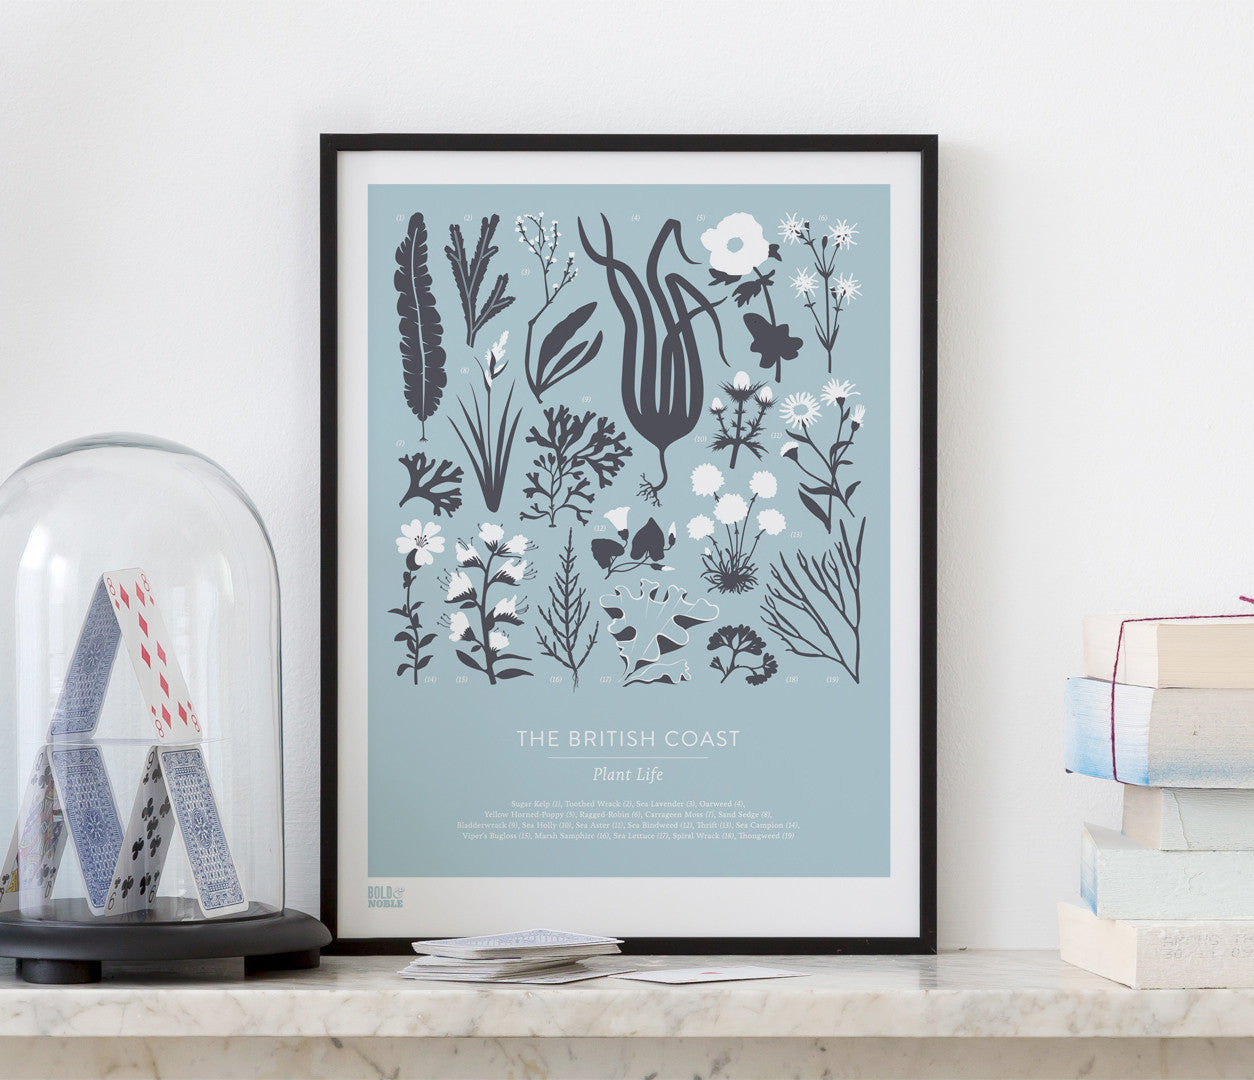 Wall art ideas, economical screen prints, British Coastal Plant Life print in duck egg blue